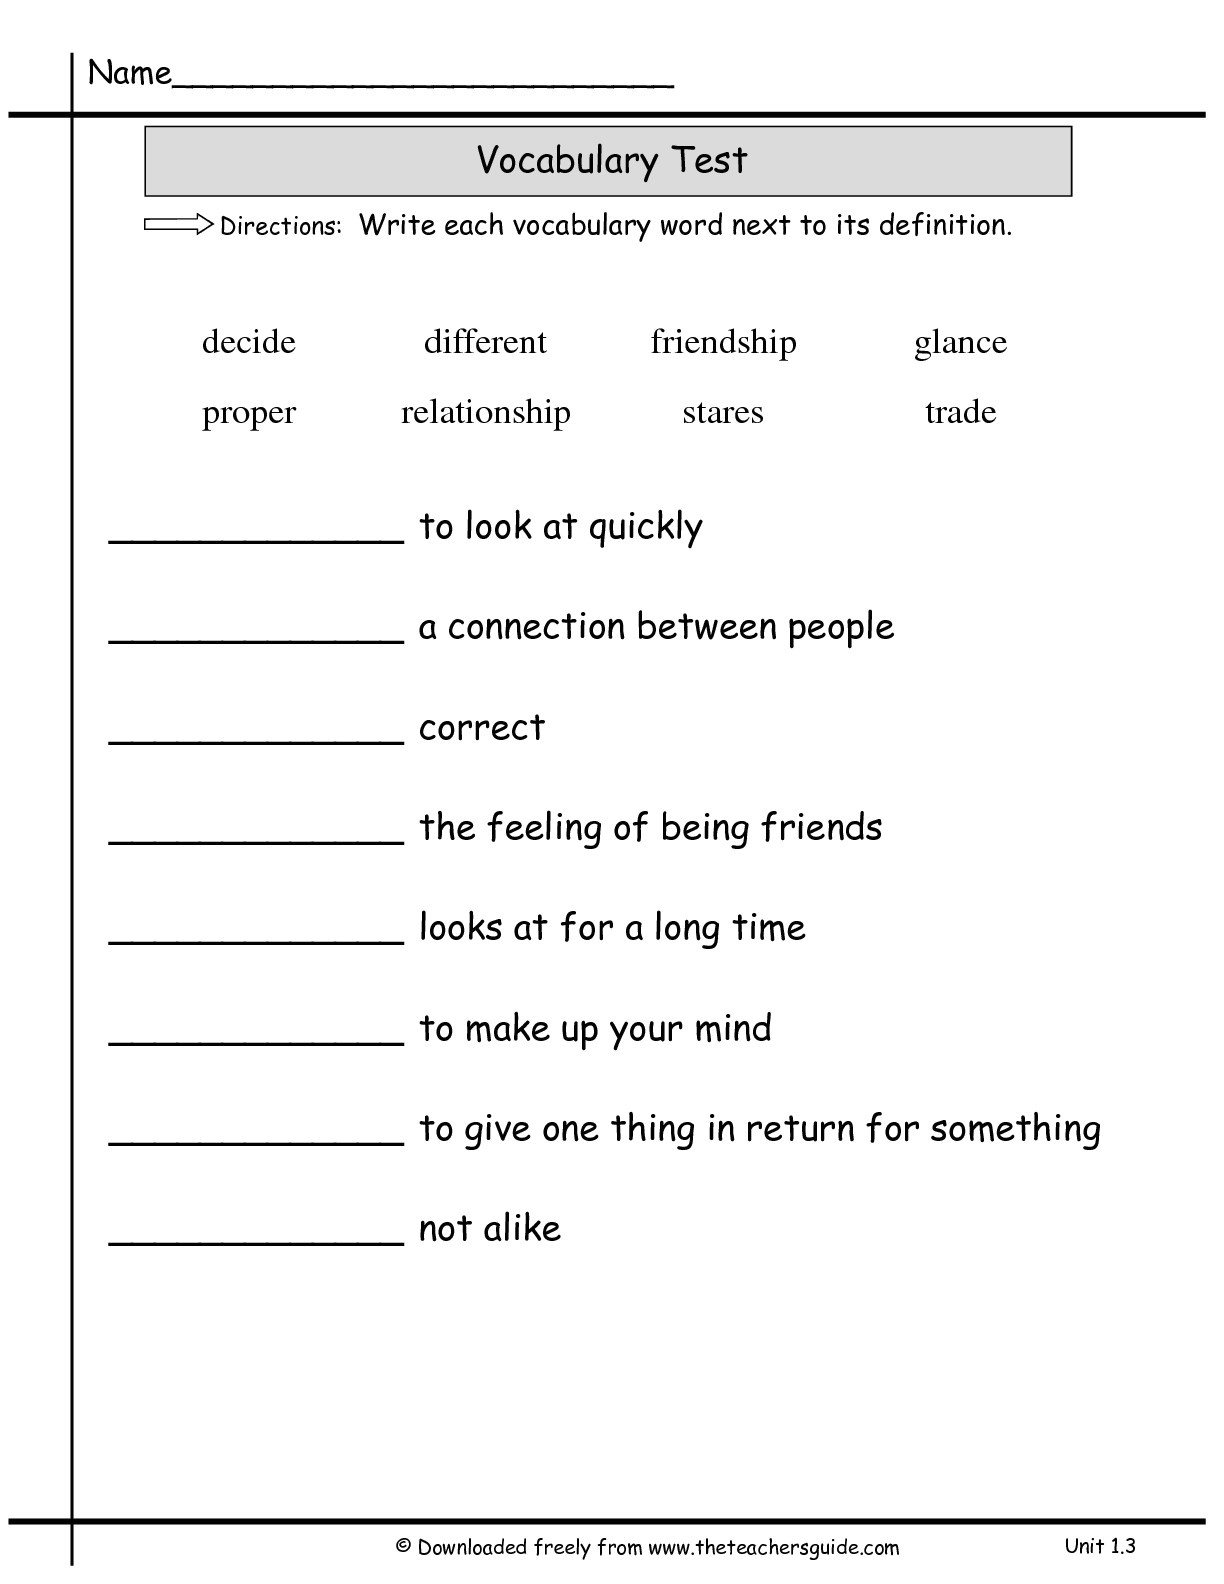 Vocabulary Quiz Template 14 Best Images Of Vocabulary Matching Worksheet Template